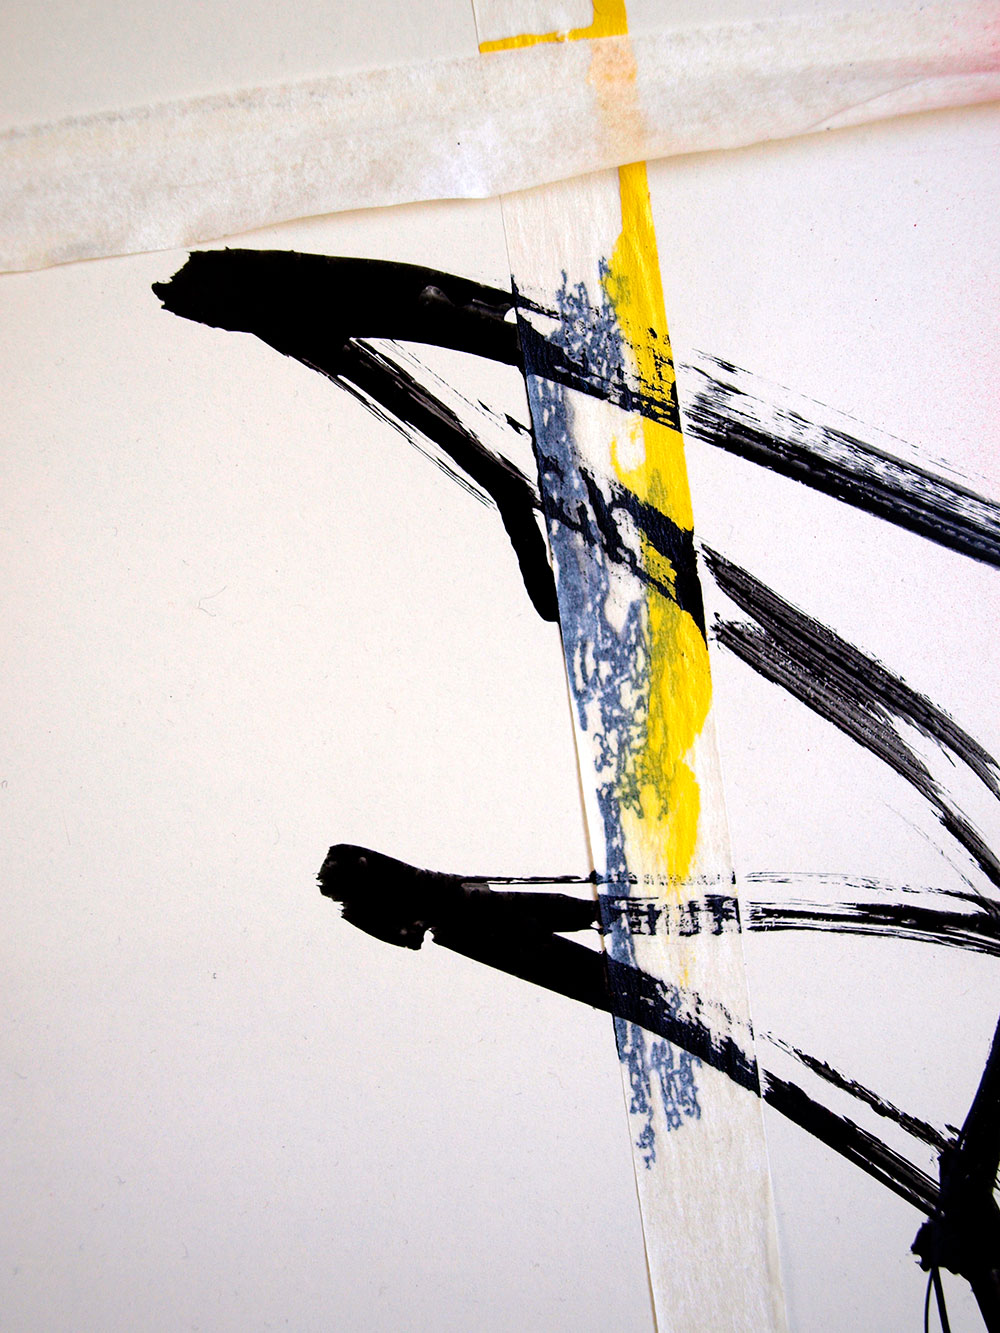 Ink texture, art studio, illustration portfolio, doodle, experimental art, abstract, ink splat, loose drawing, line drawing, pen and ink